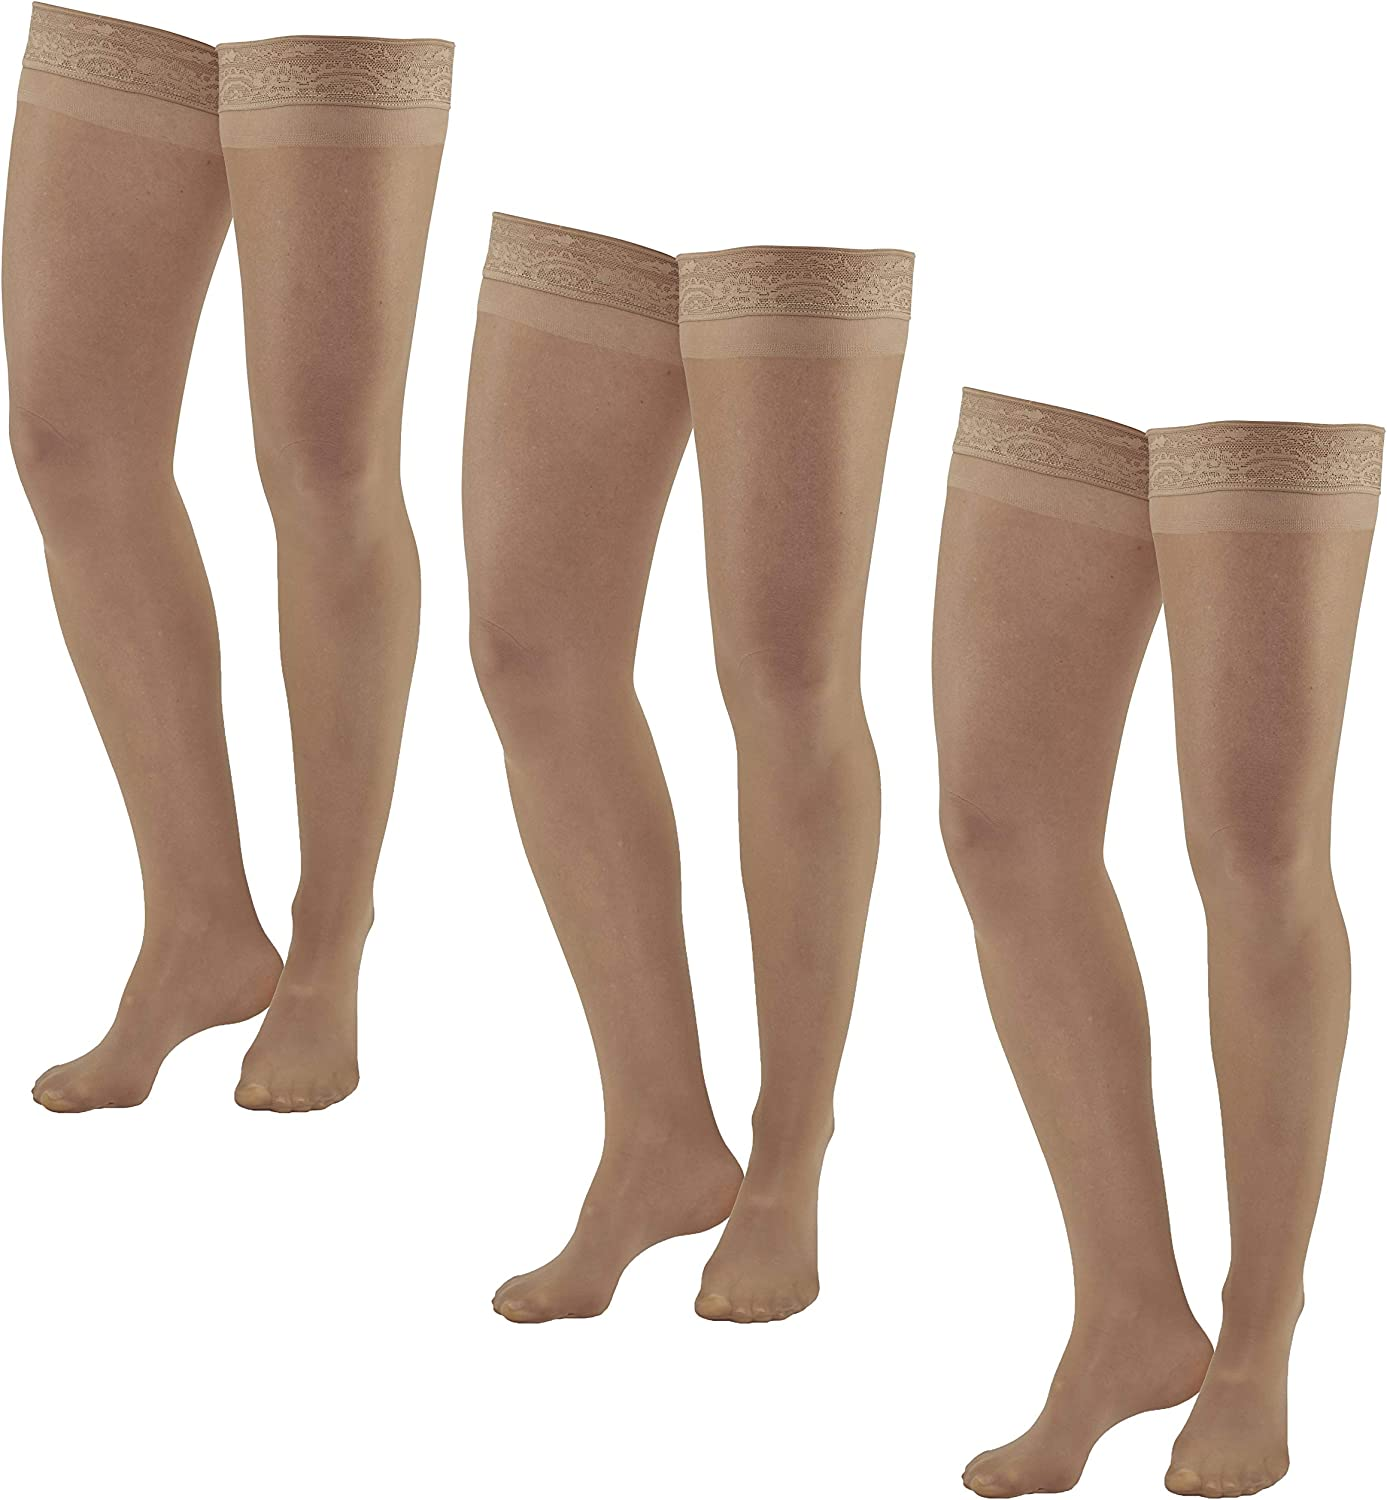 Ames Walker AW Style 74 Soft Sheer 8 15mmHg Thigh Highs w/Band (3 Pack) Natural